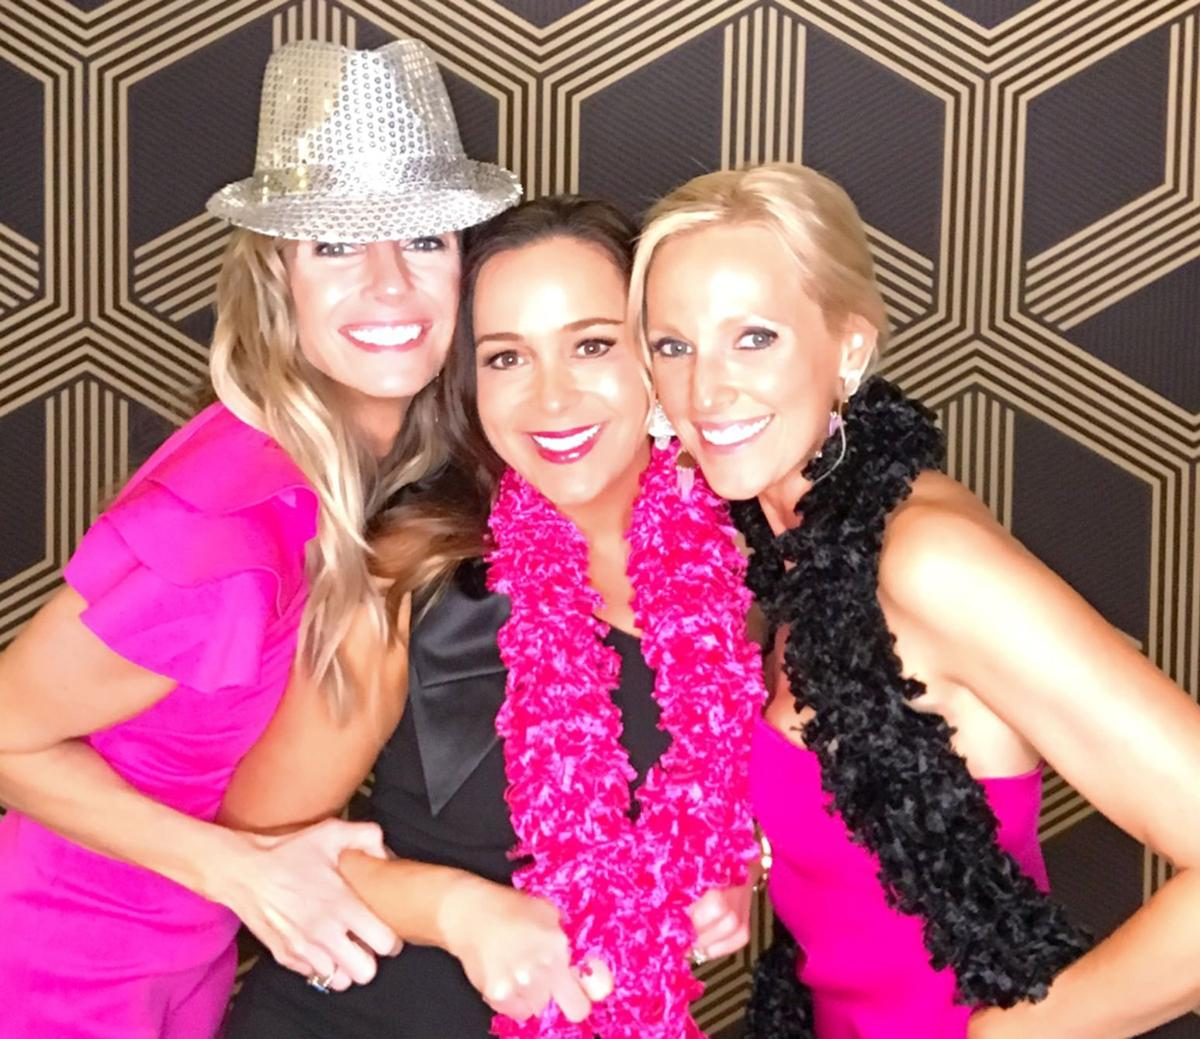 051519_MNS_full_Pink_Affair_002 Kim Dell Torie Roush Ashley Franks